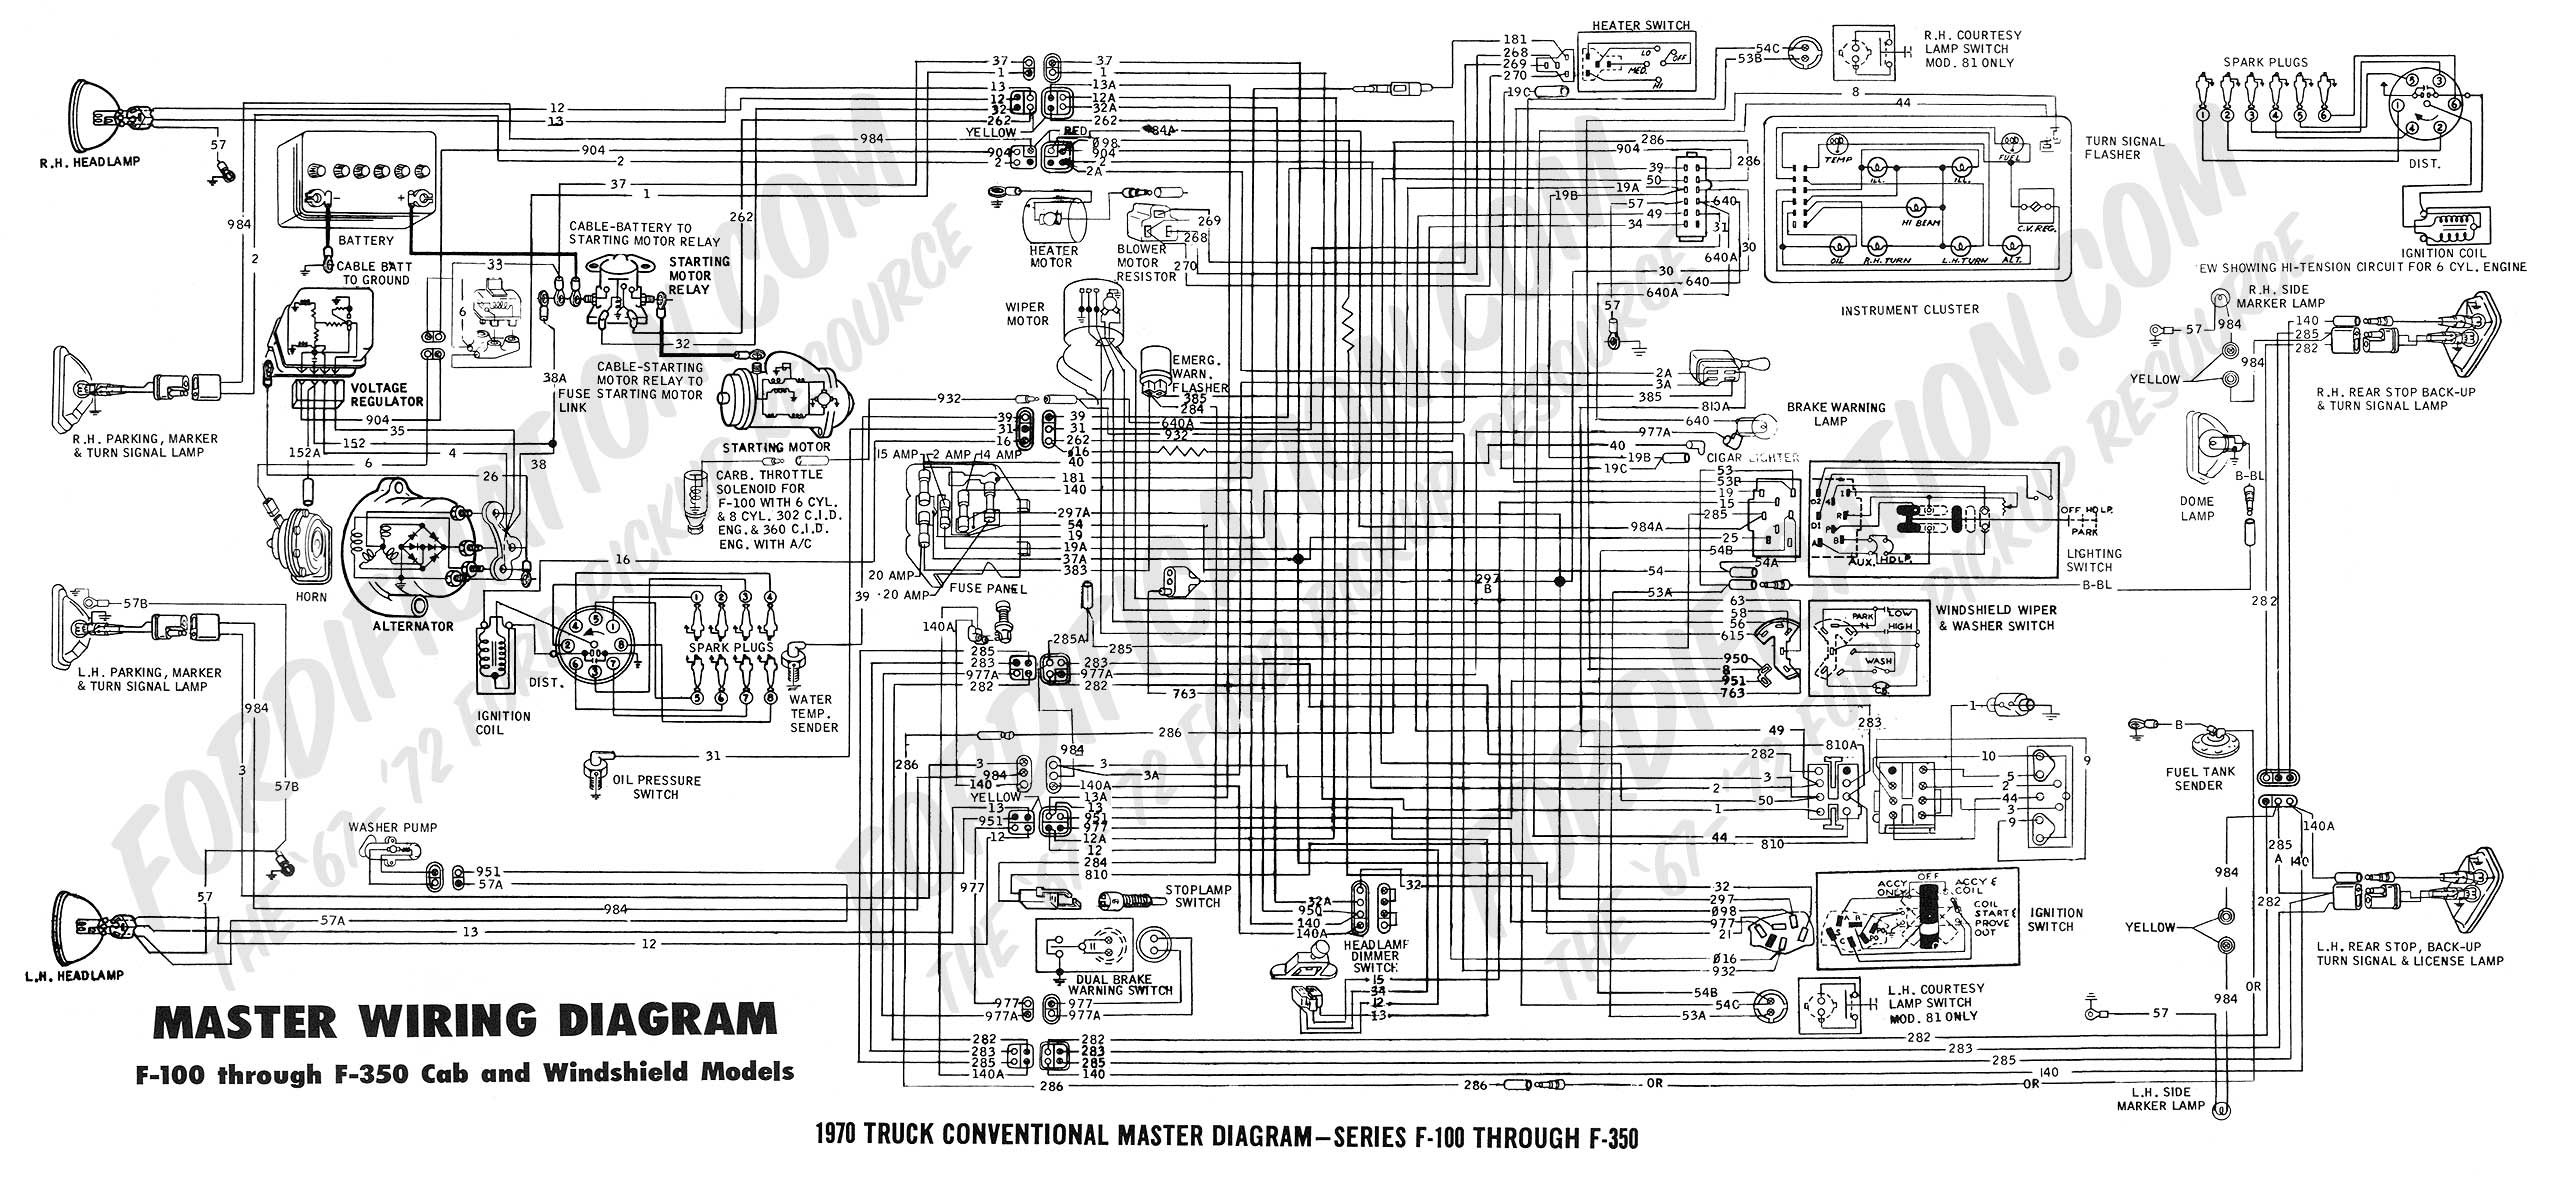 wiring diagram 70_master wiring diagram for 2007 freightliner columbia ireleast Wiring Harness Diagram at metegol.co